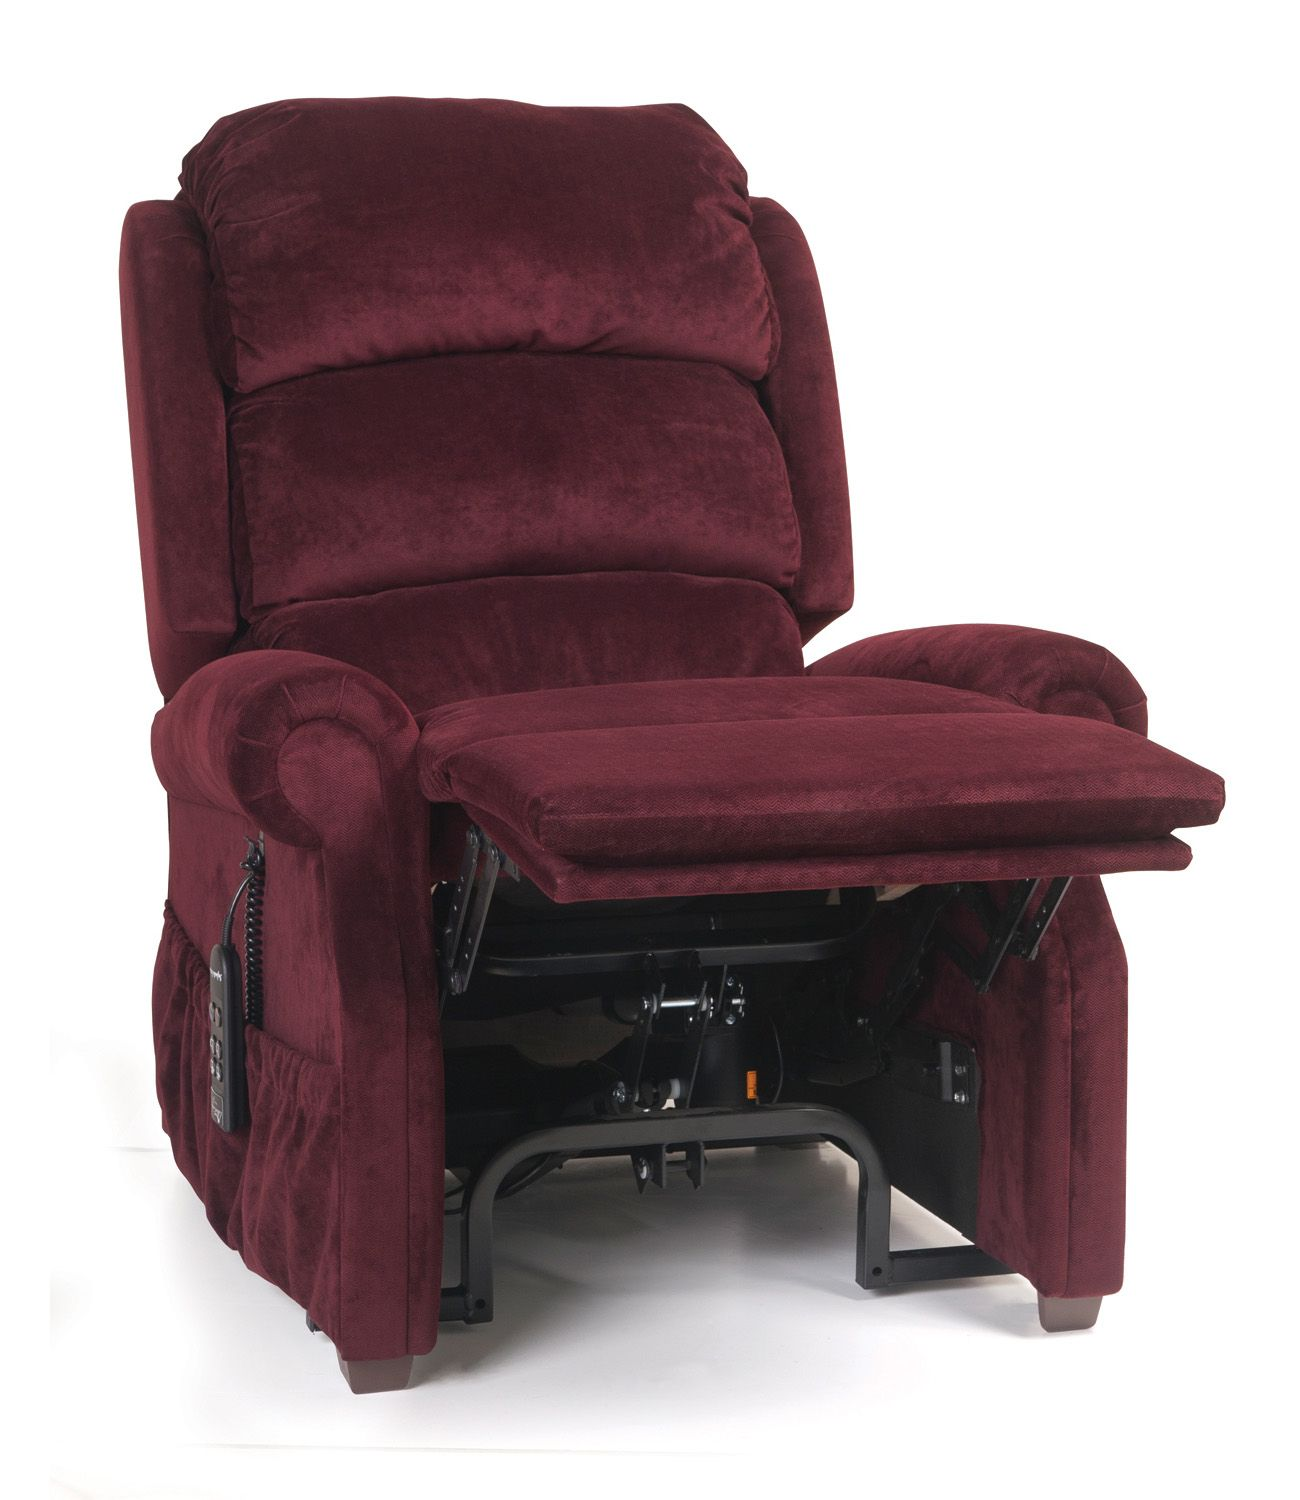 Stellar Comfort Power Recline Chair Zero